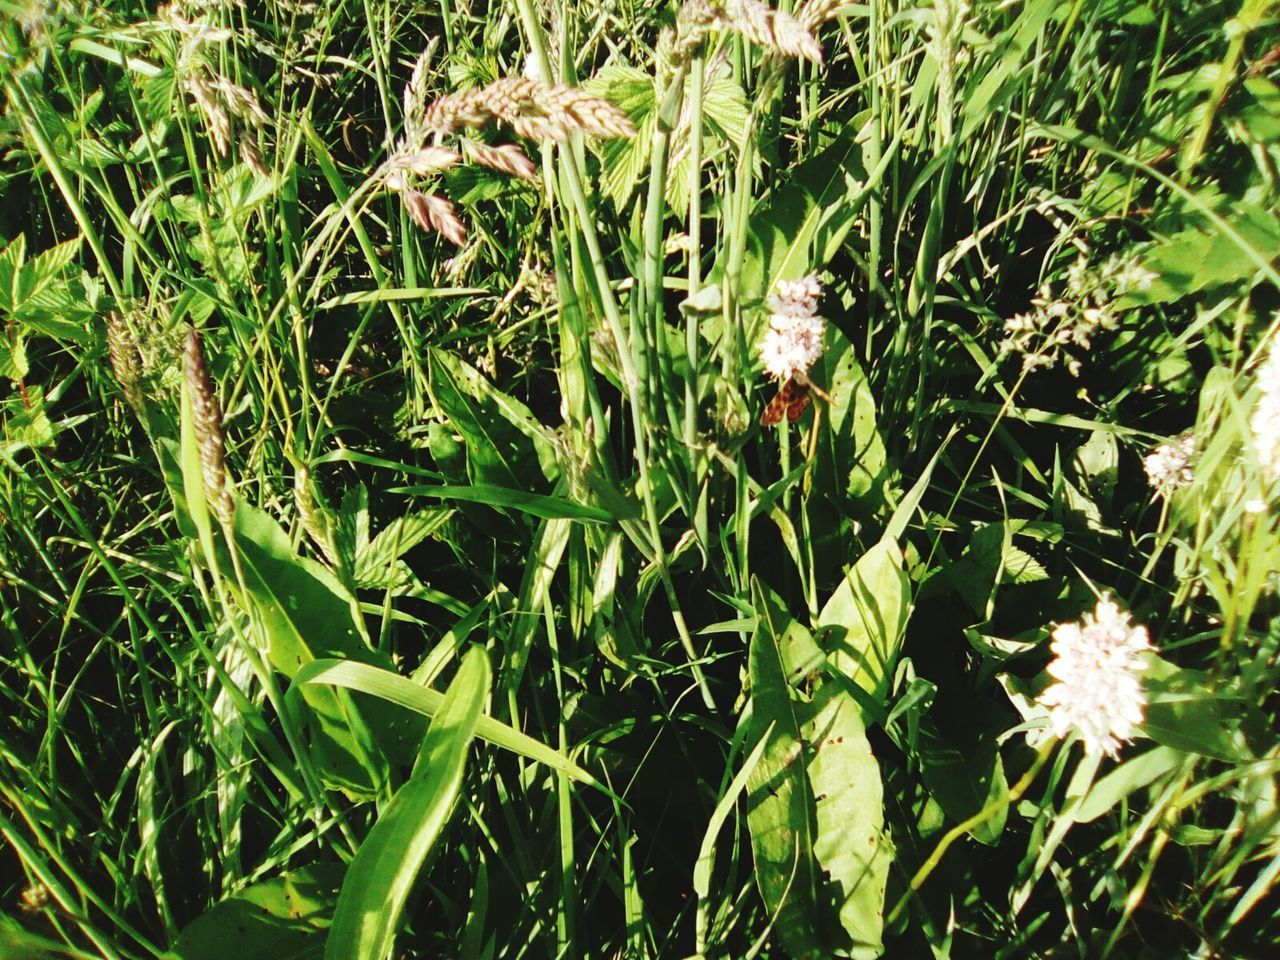 green color, grass, nature, growth, plant, leaf, no people, outdoors, day, close-up, freshness